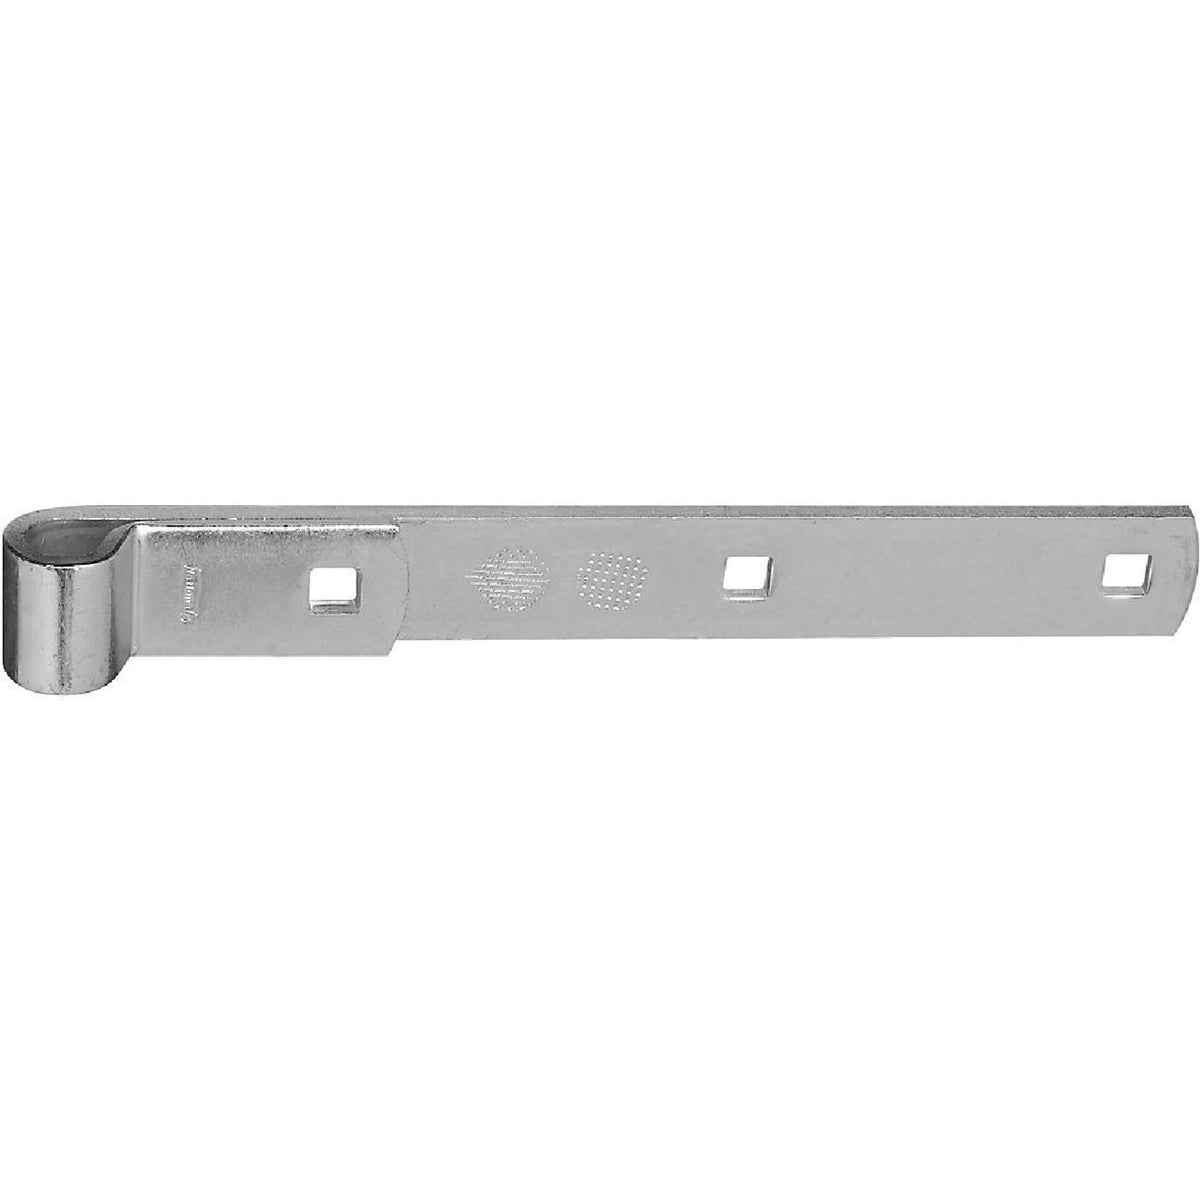 "10"" ZN HINGE STRAP - N130732 by National Mfg Co"